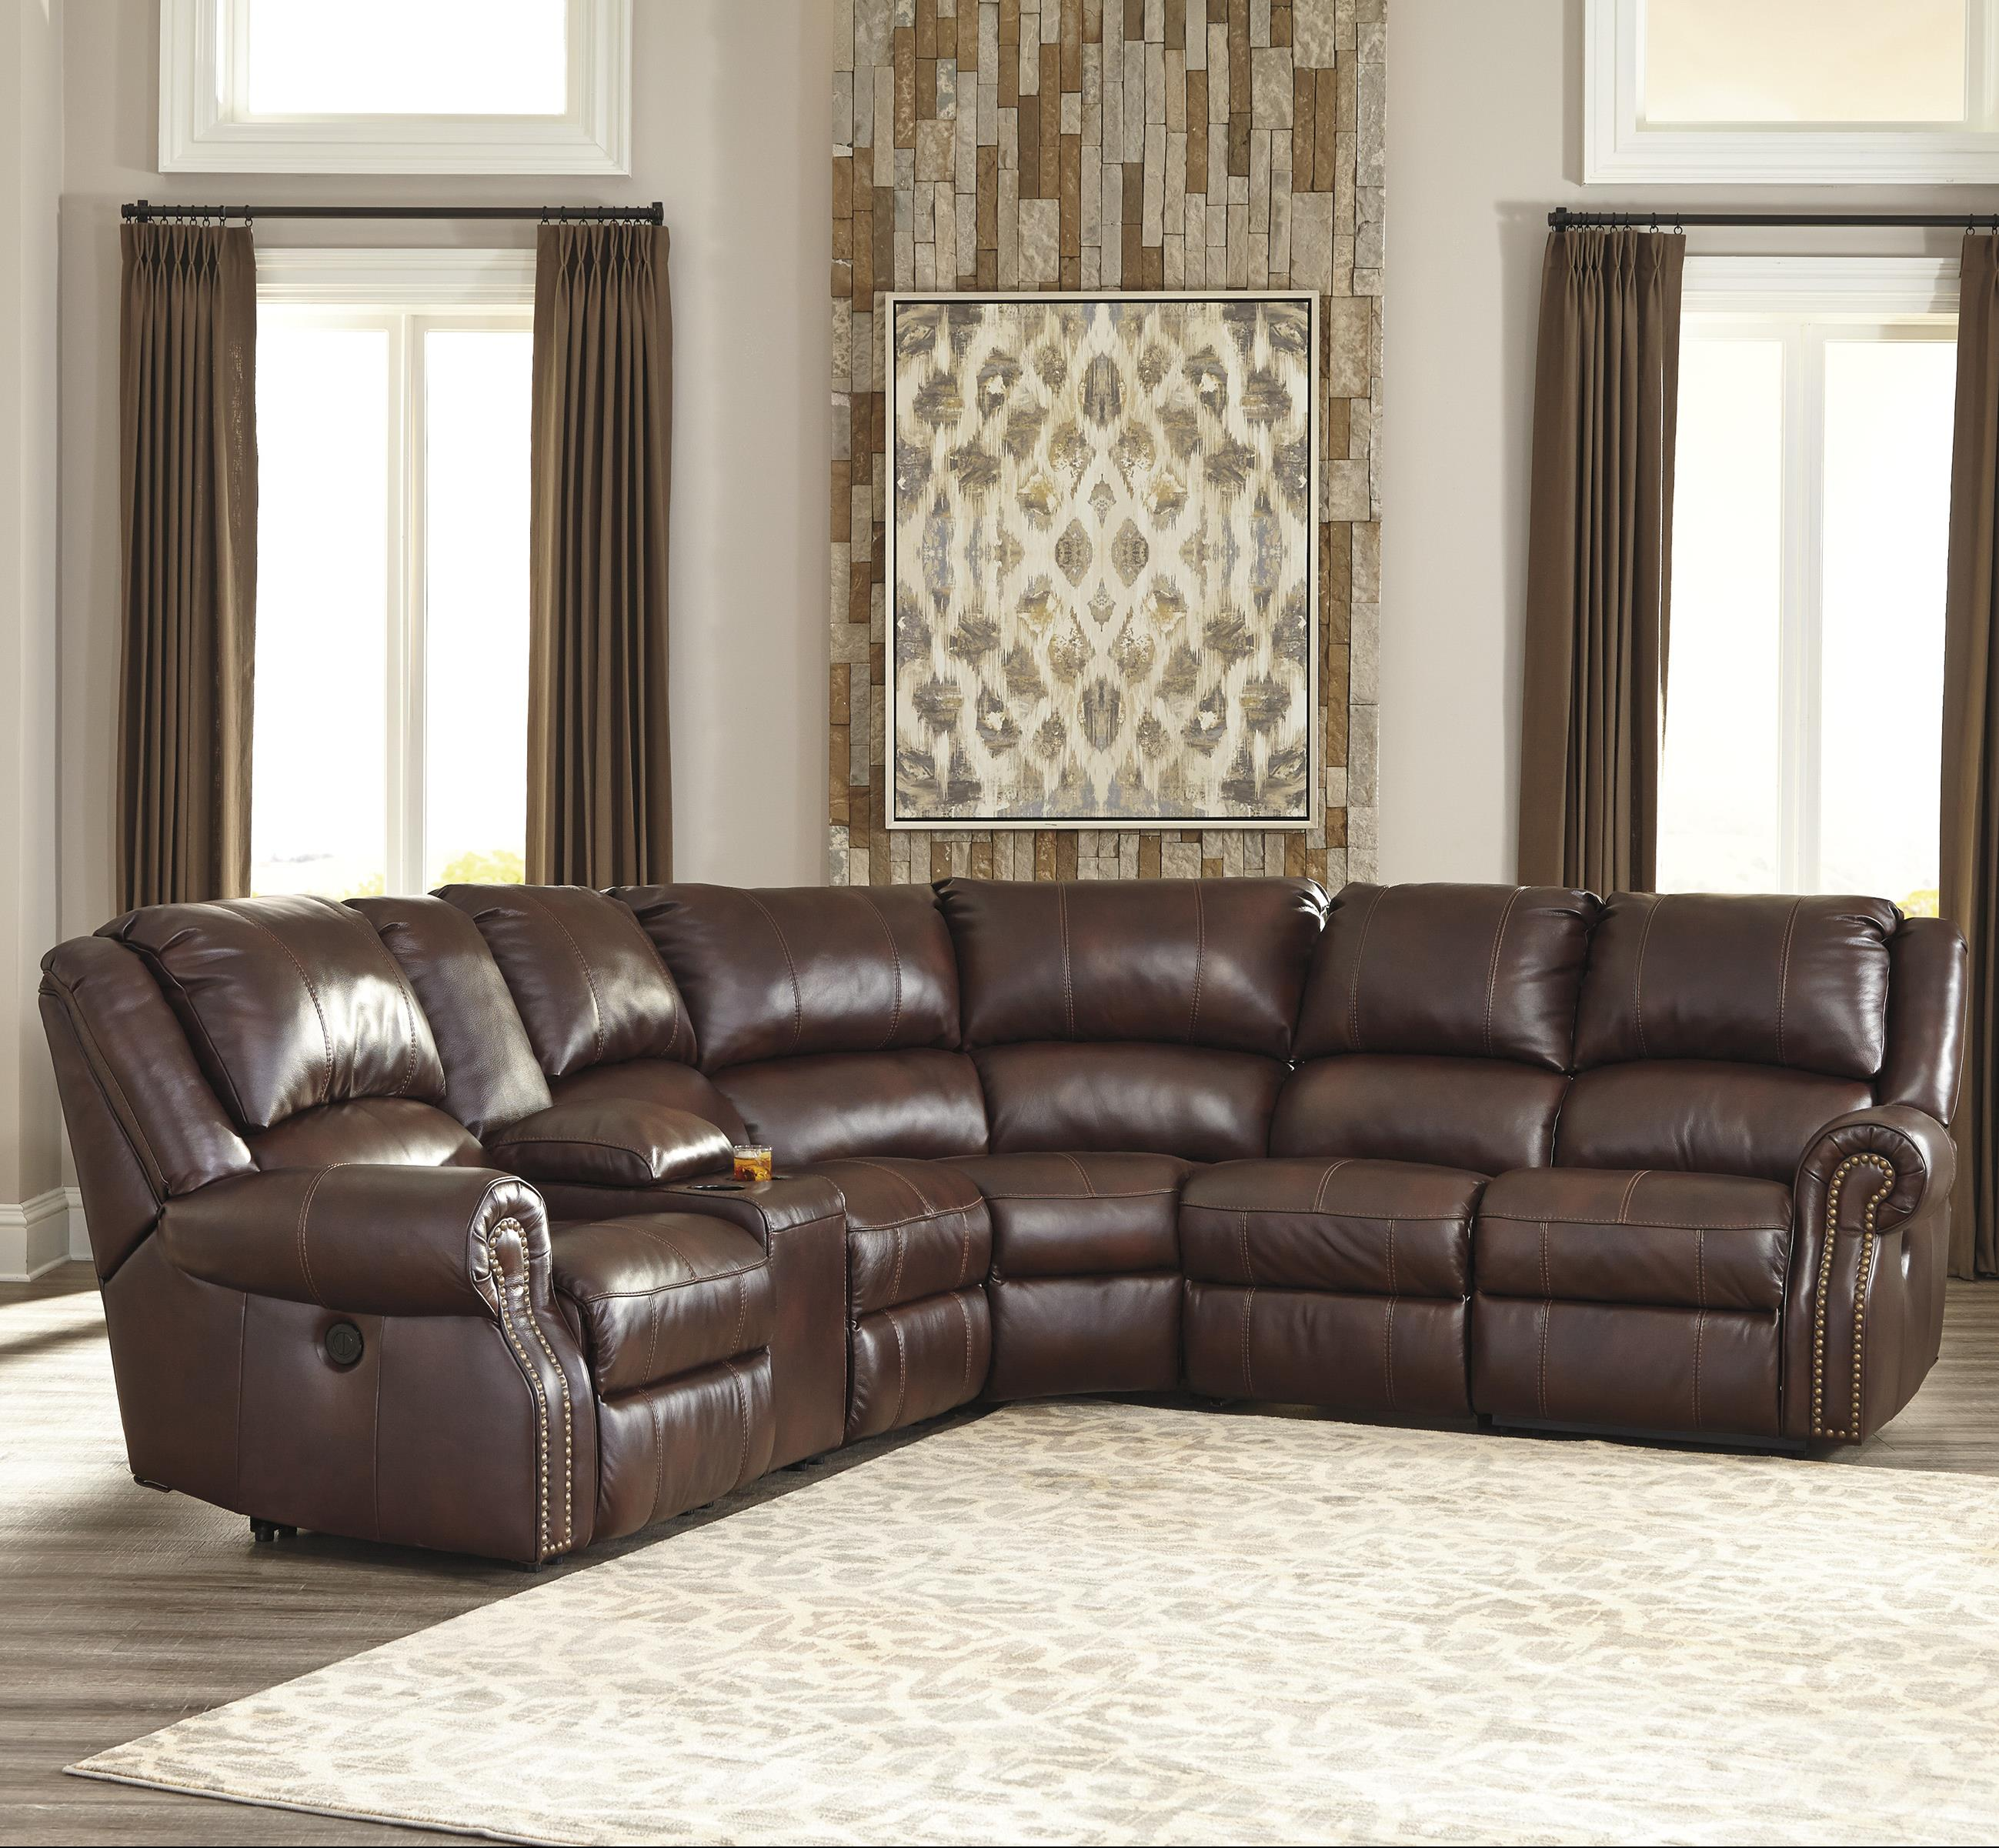 Texas Ashley Furniture: Ashley Collinsville 5pc Chestnut Reclining Sectional